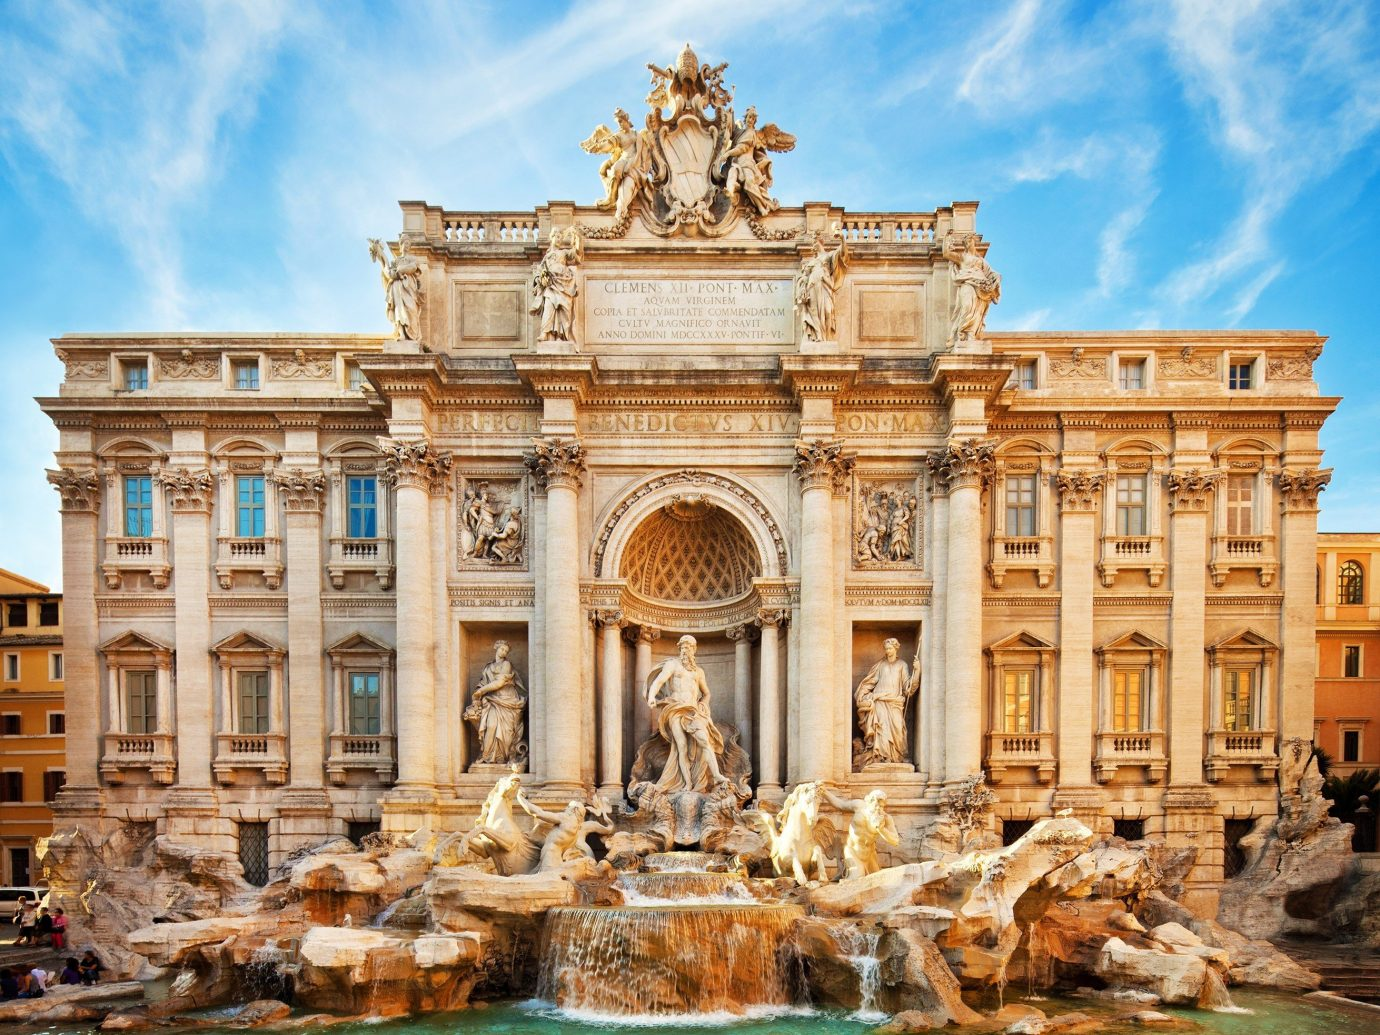 Trip Ideas building outdoor landmark historic site fountain ancient rome palace ancient roman architecture plaza ancient history Architecture water feature facade monument basilica stone